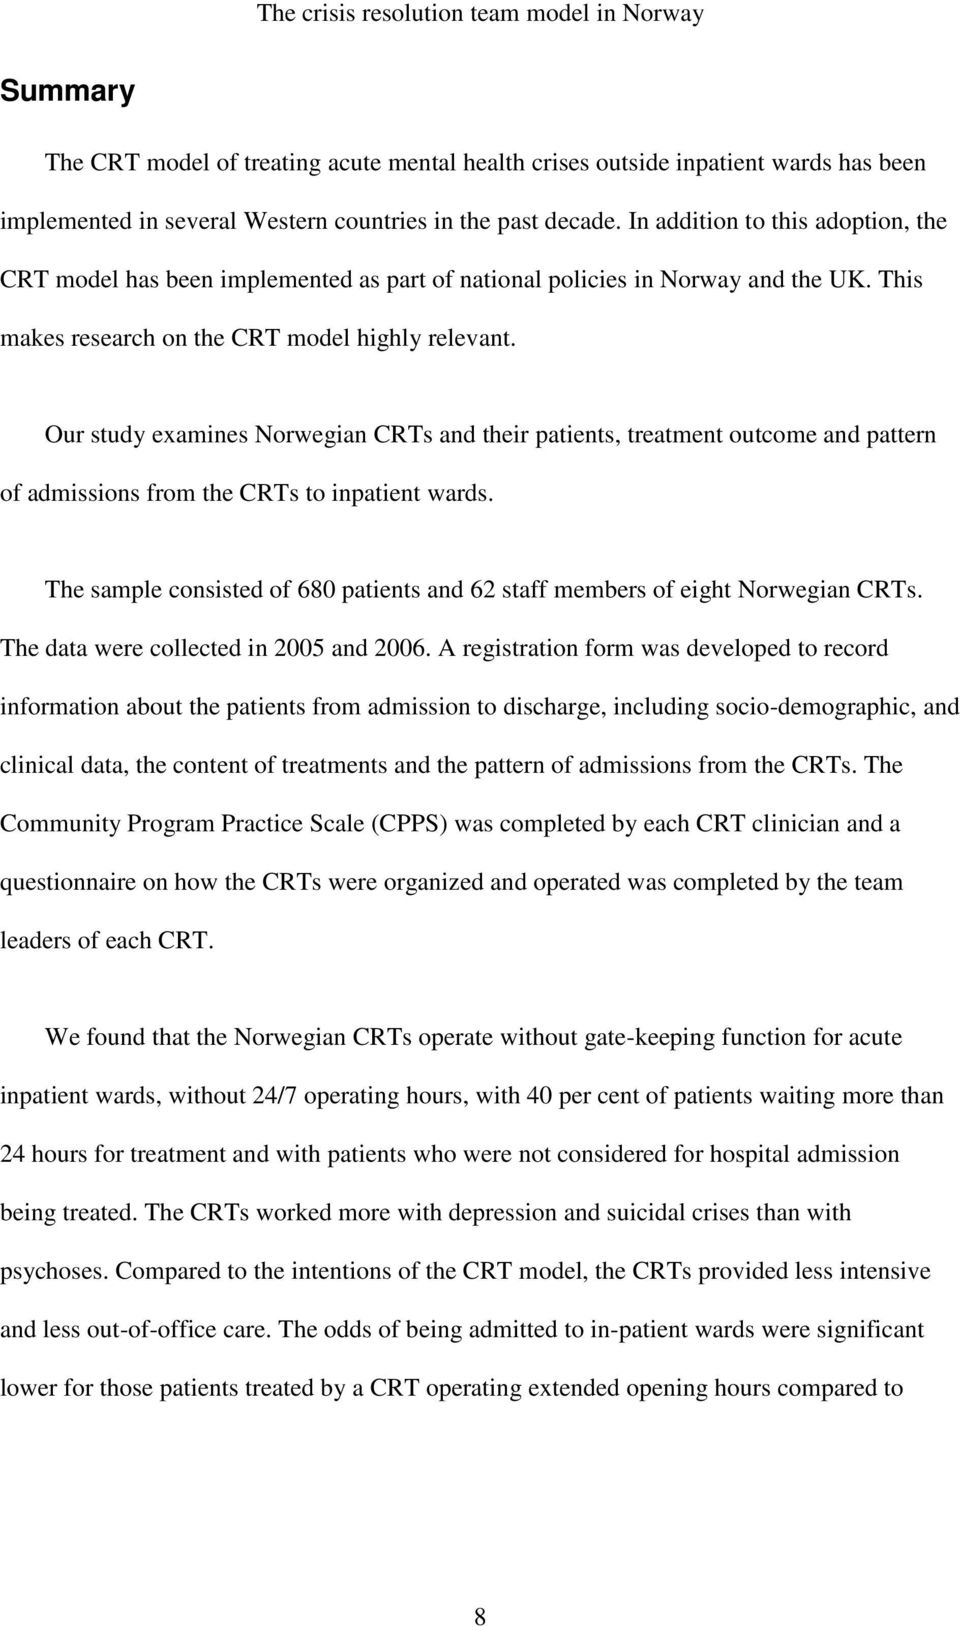 Our study examines Norwegian CRTs and their patients, treatment outcome and pattern of admissions from the CRTs to inpatient wards.